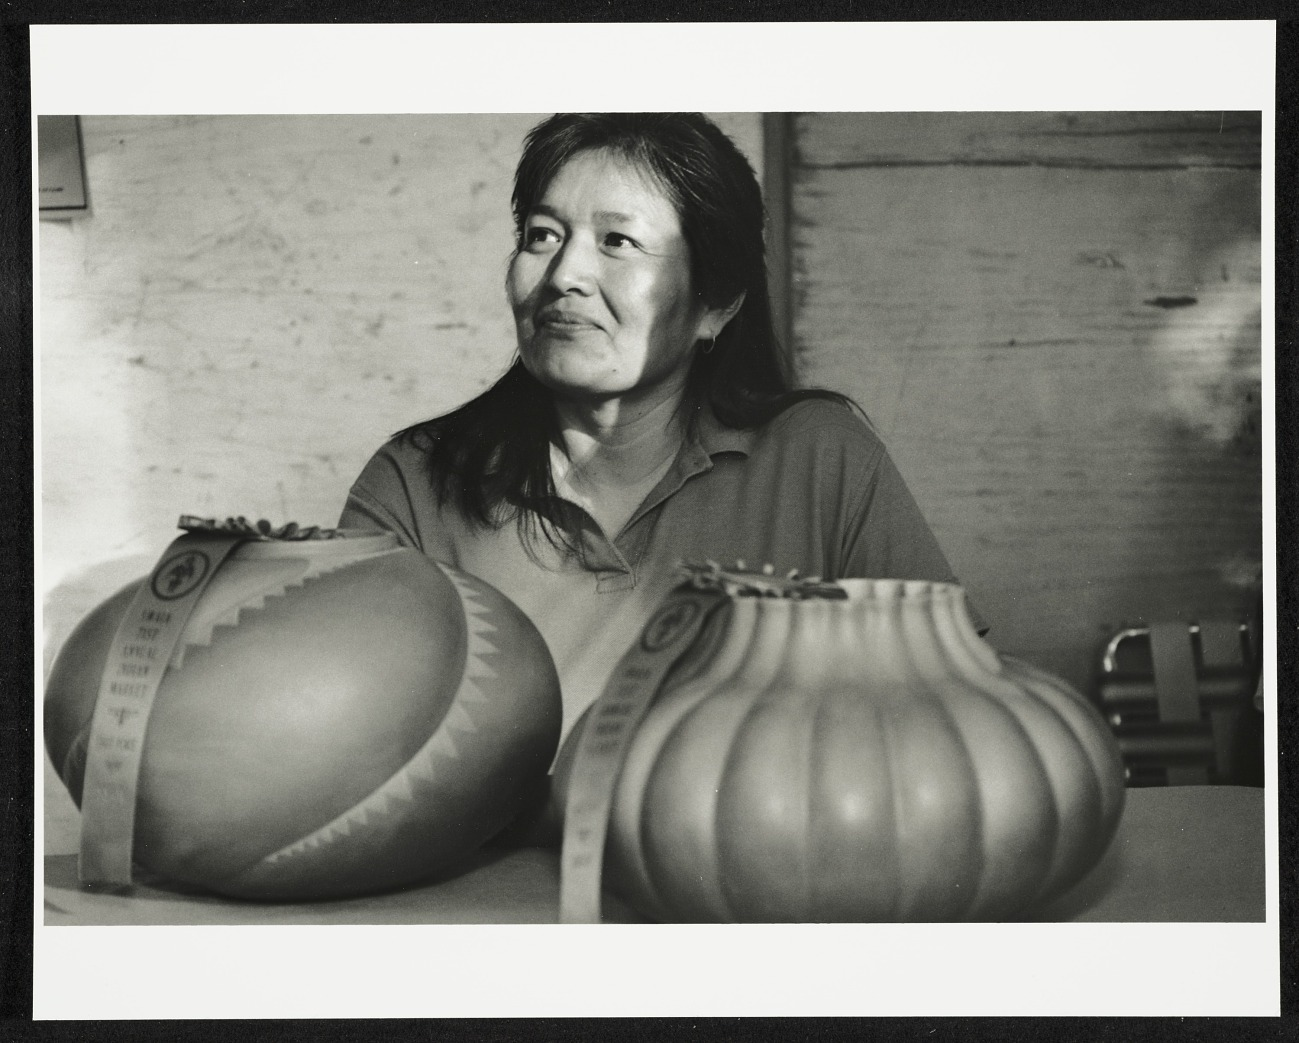 A black-and-white photo of a Native American woman with dark, long hair. She sits at a table with two large pieces of pottery in front of her, each has a winner ribbon on it. She looks off to the left smiling slightly as sunlight illuminates her face.